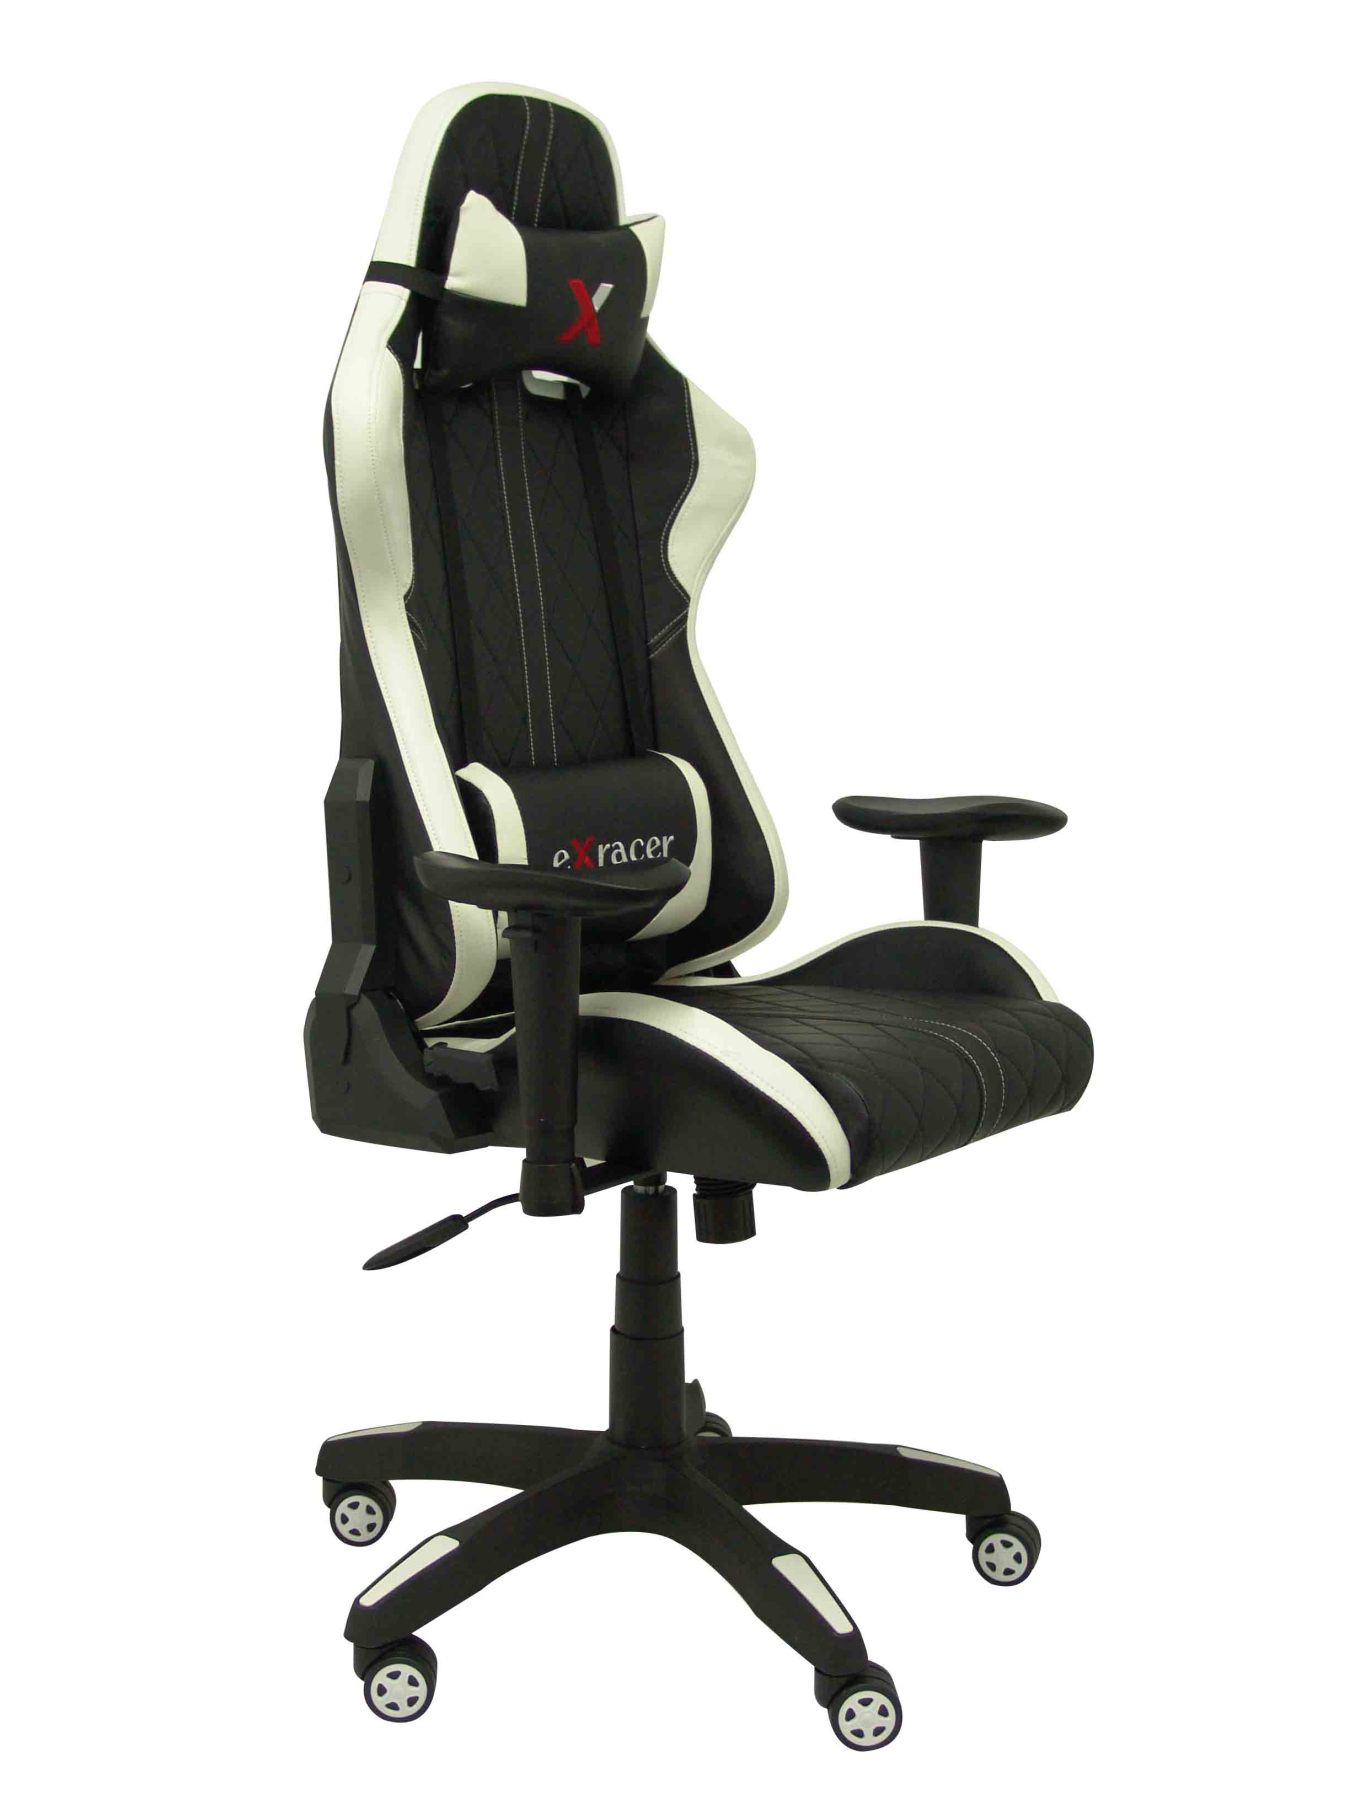 Gaming Chair With Mechanism Rocker, Adjustable Height And Arms Dimmable Included-Seat And Backrest Cushion